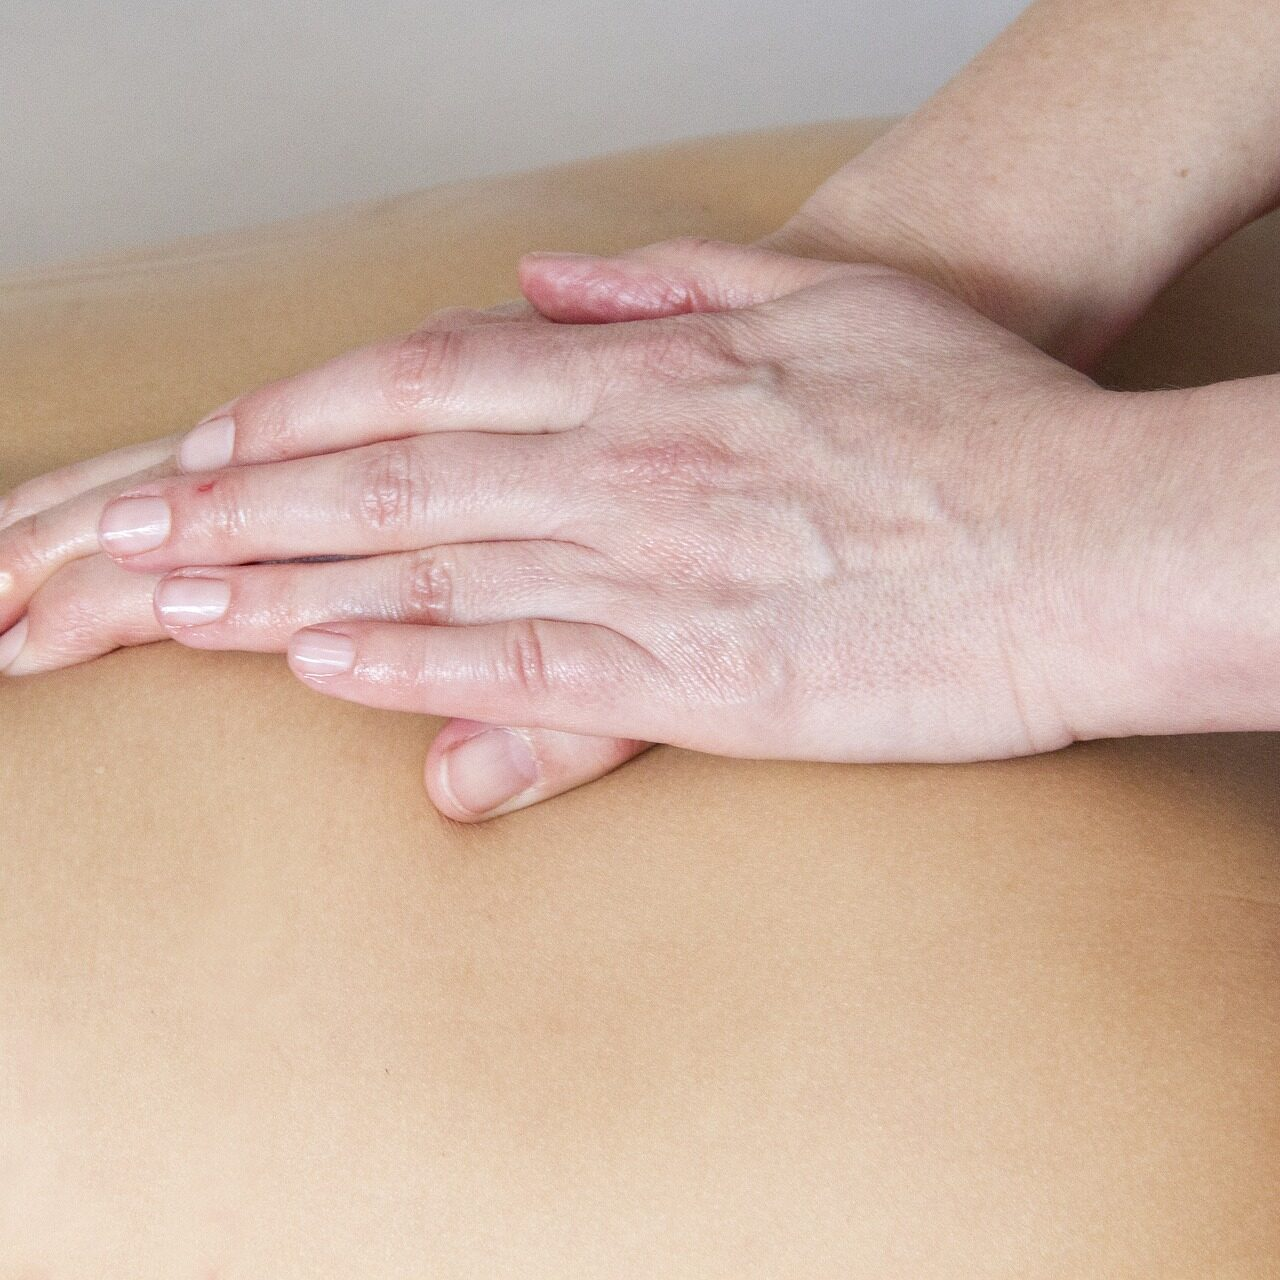 Therapeutic Massage, craniosacral therapy, low back pain, headaches, migraines, neck pain, energy work, reiki